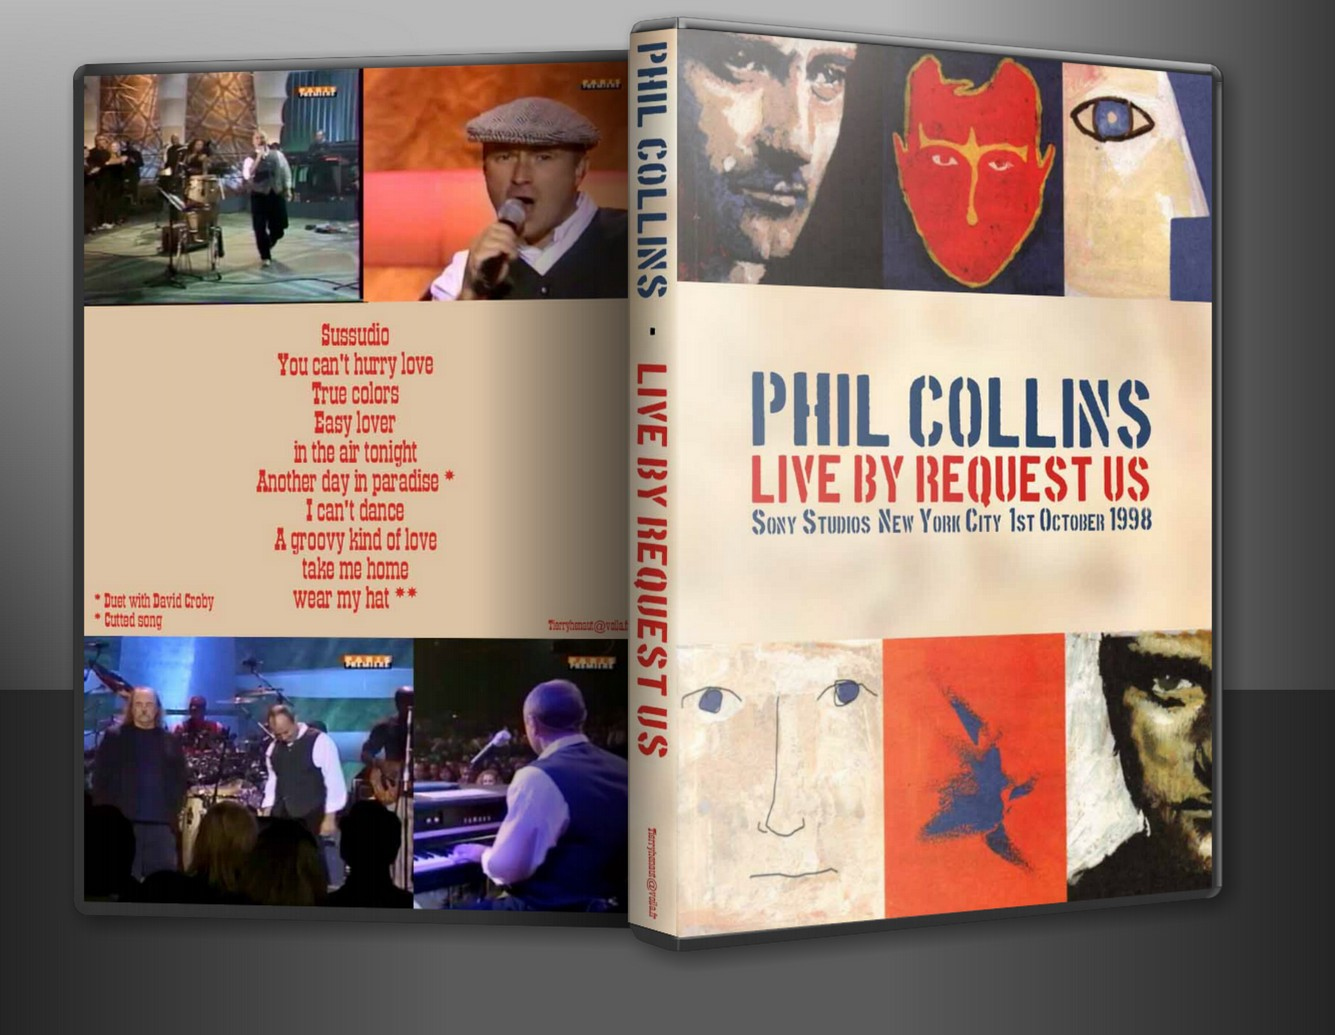 http://1.bp.blogspot.com/-nCr3zQLcjBY/T-k_HJp9mXI/AAAAAAAAGdw/M71Sau0ZSgA/s1600/DVD+Cover+For+Show+-+Phil+Collins+-+Live+By+Request+1998.jpg